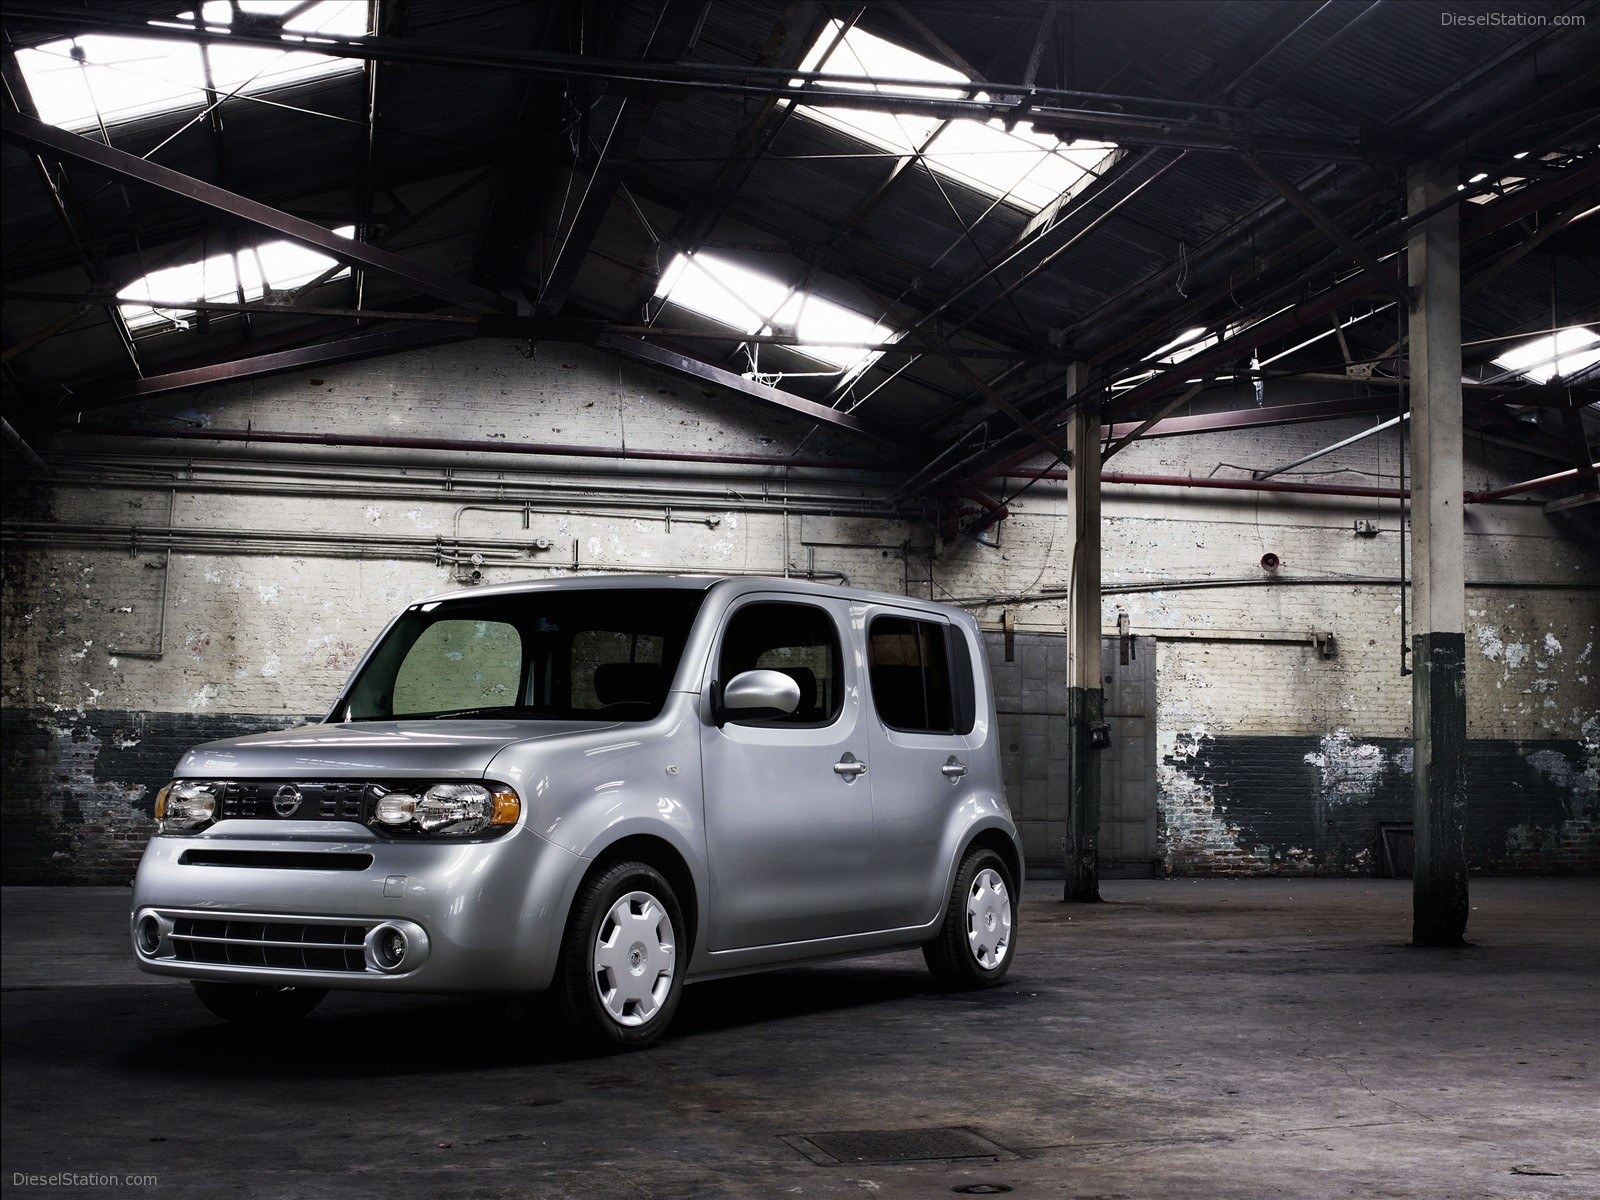 2009 Nissan Cube Exotic Car Wallpaper 21 of 54 Diesel Station 1600x1200